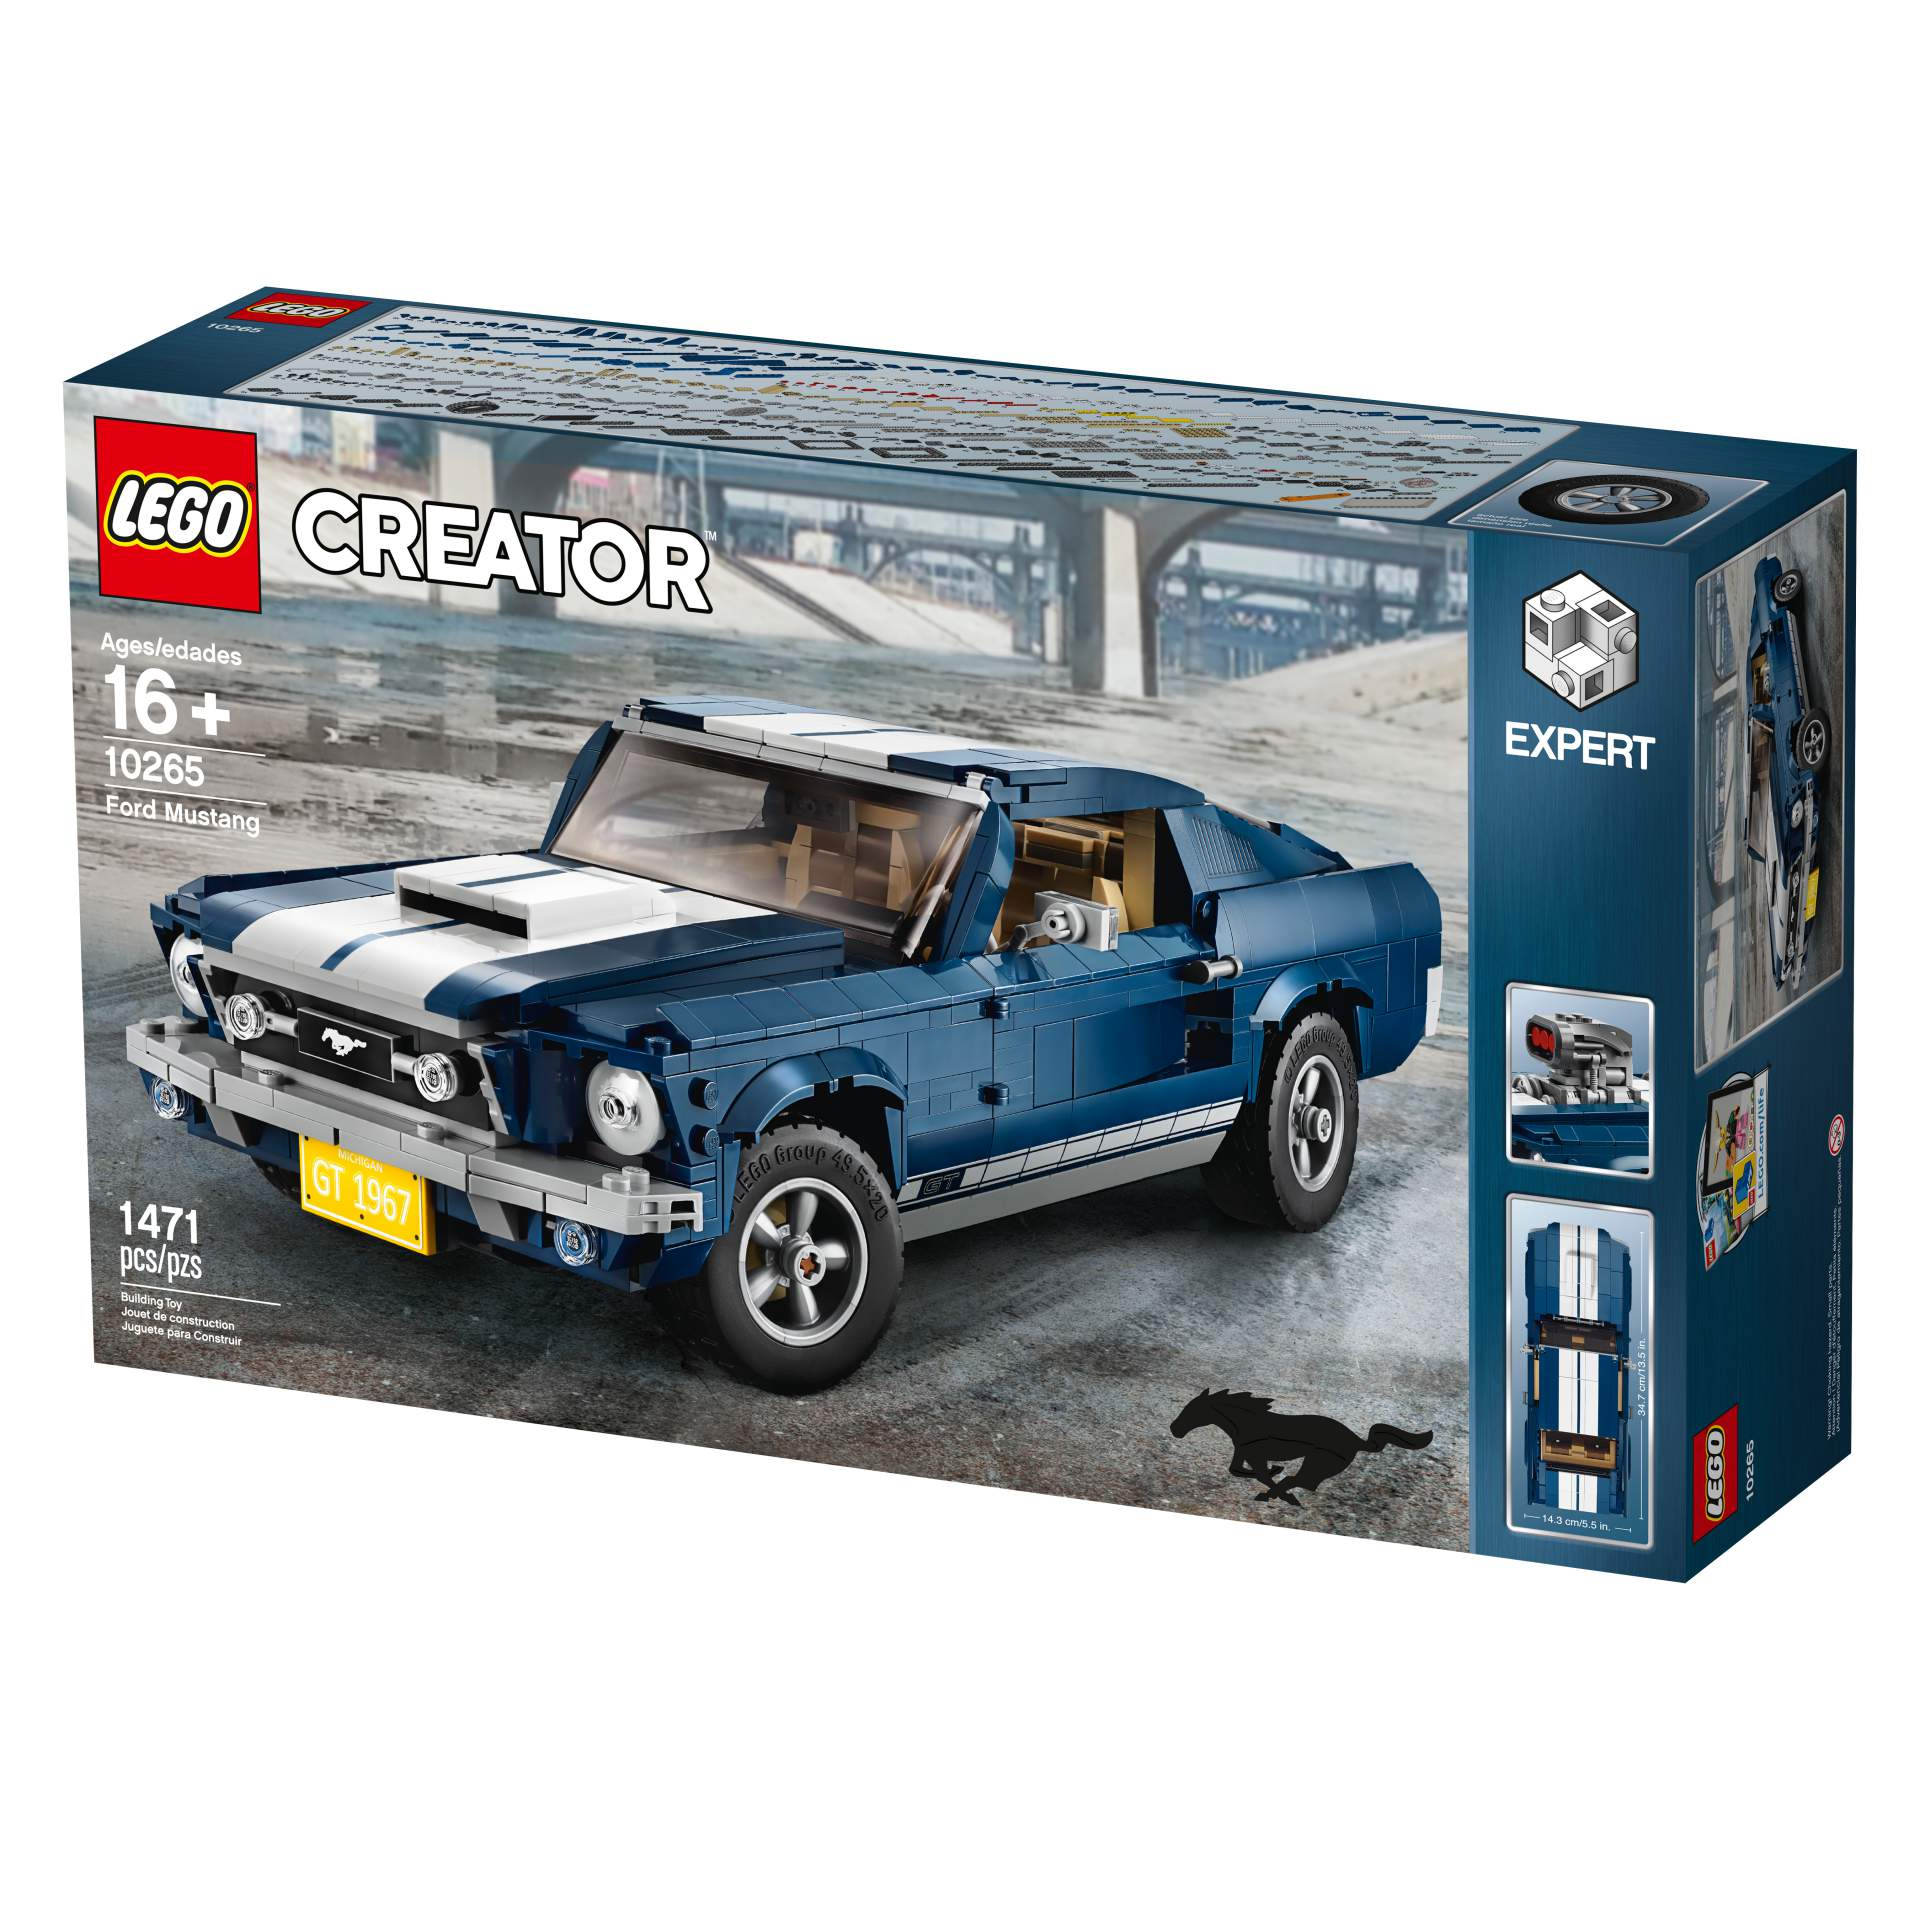 Ford Mustang GT 1967 Lego Creator Set (22)